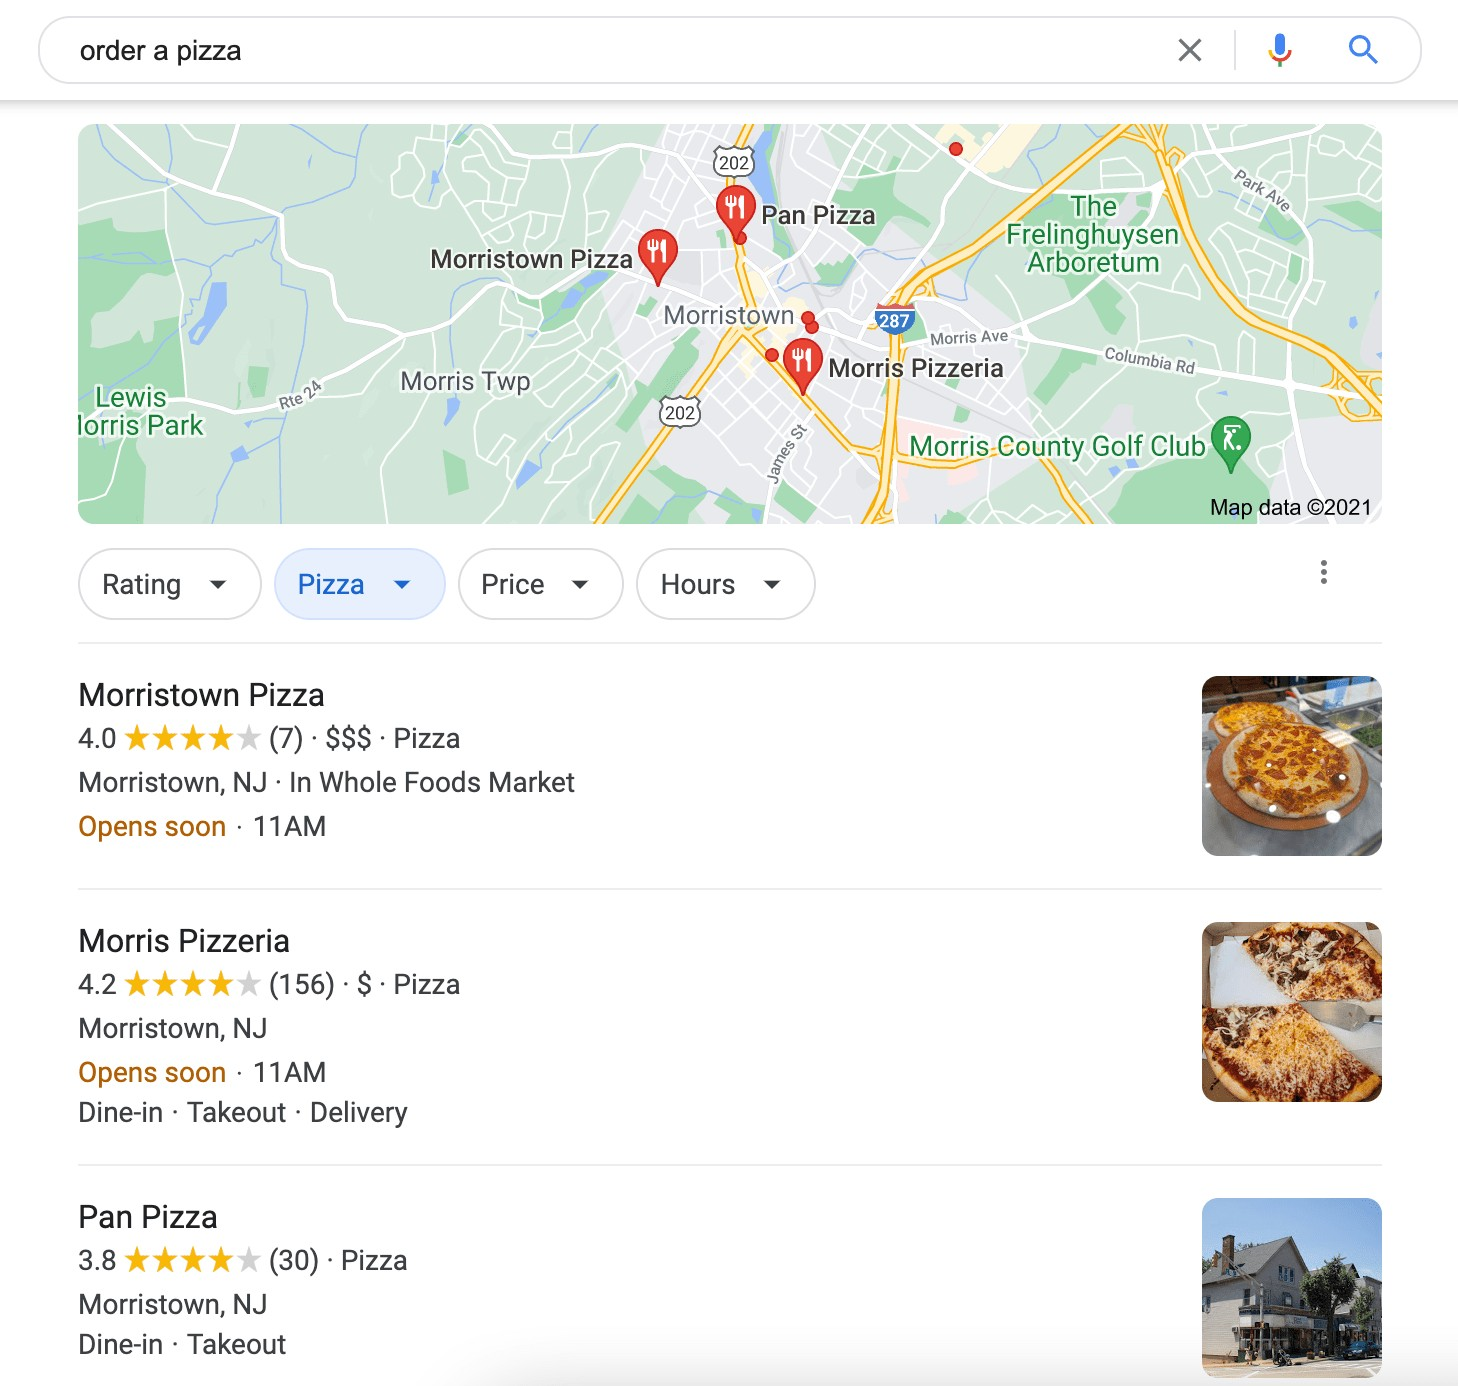 showing local pizza places in search queries for the search term order a pizza